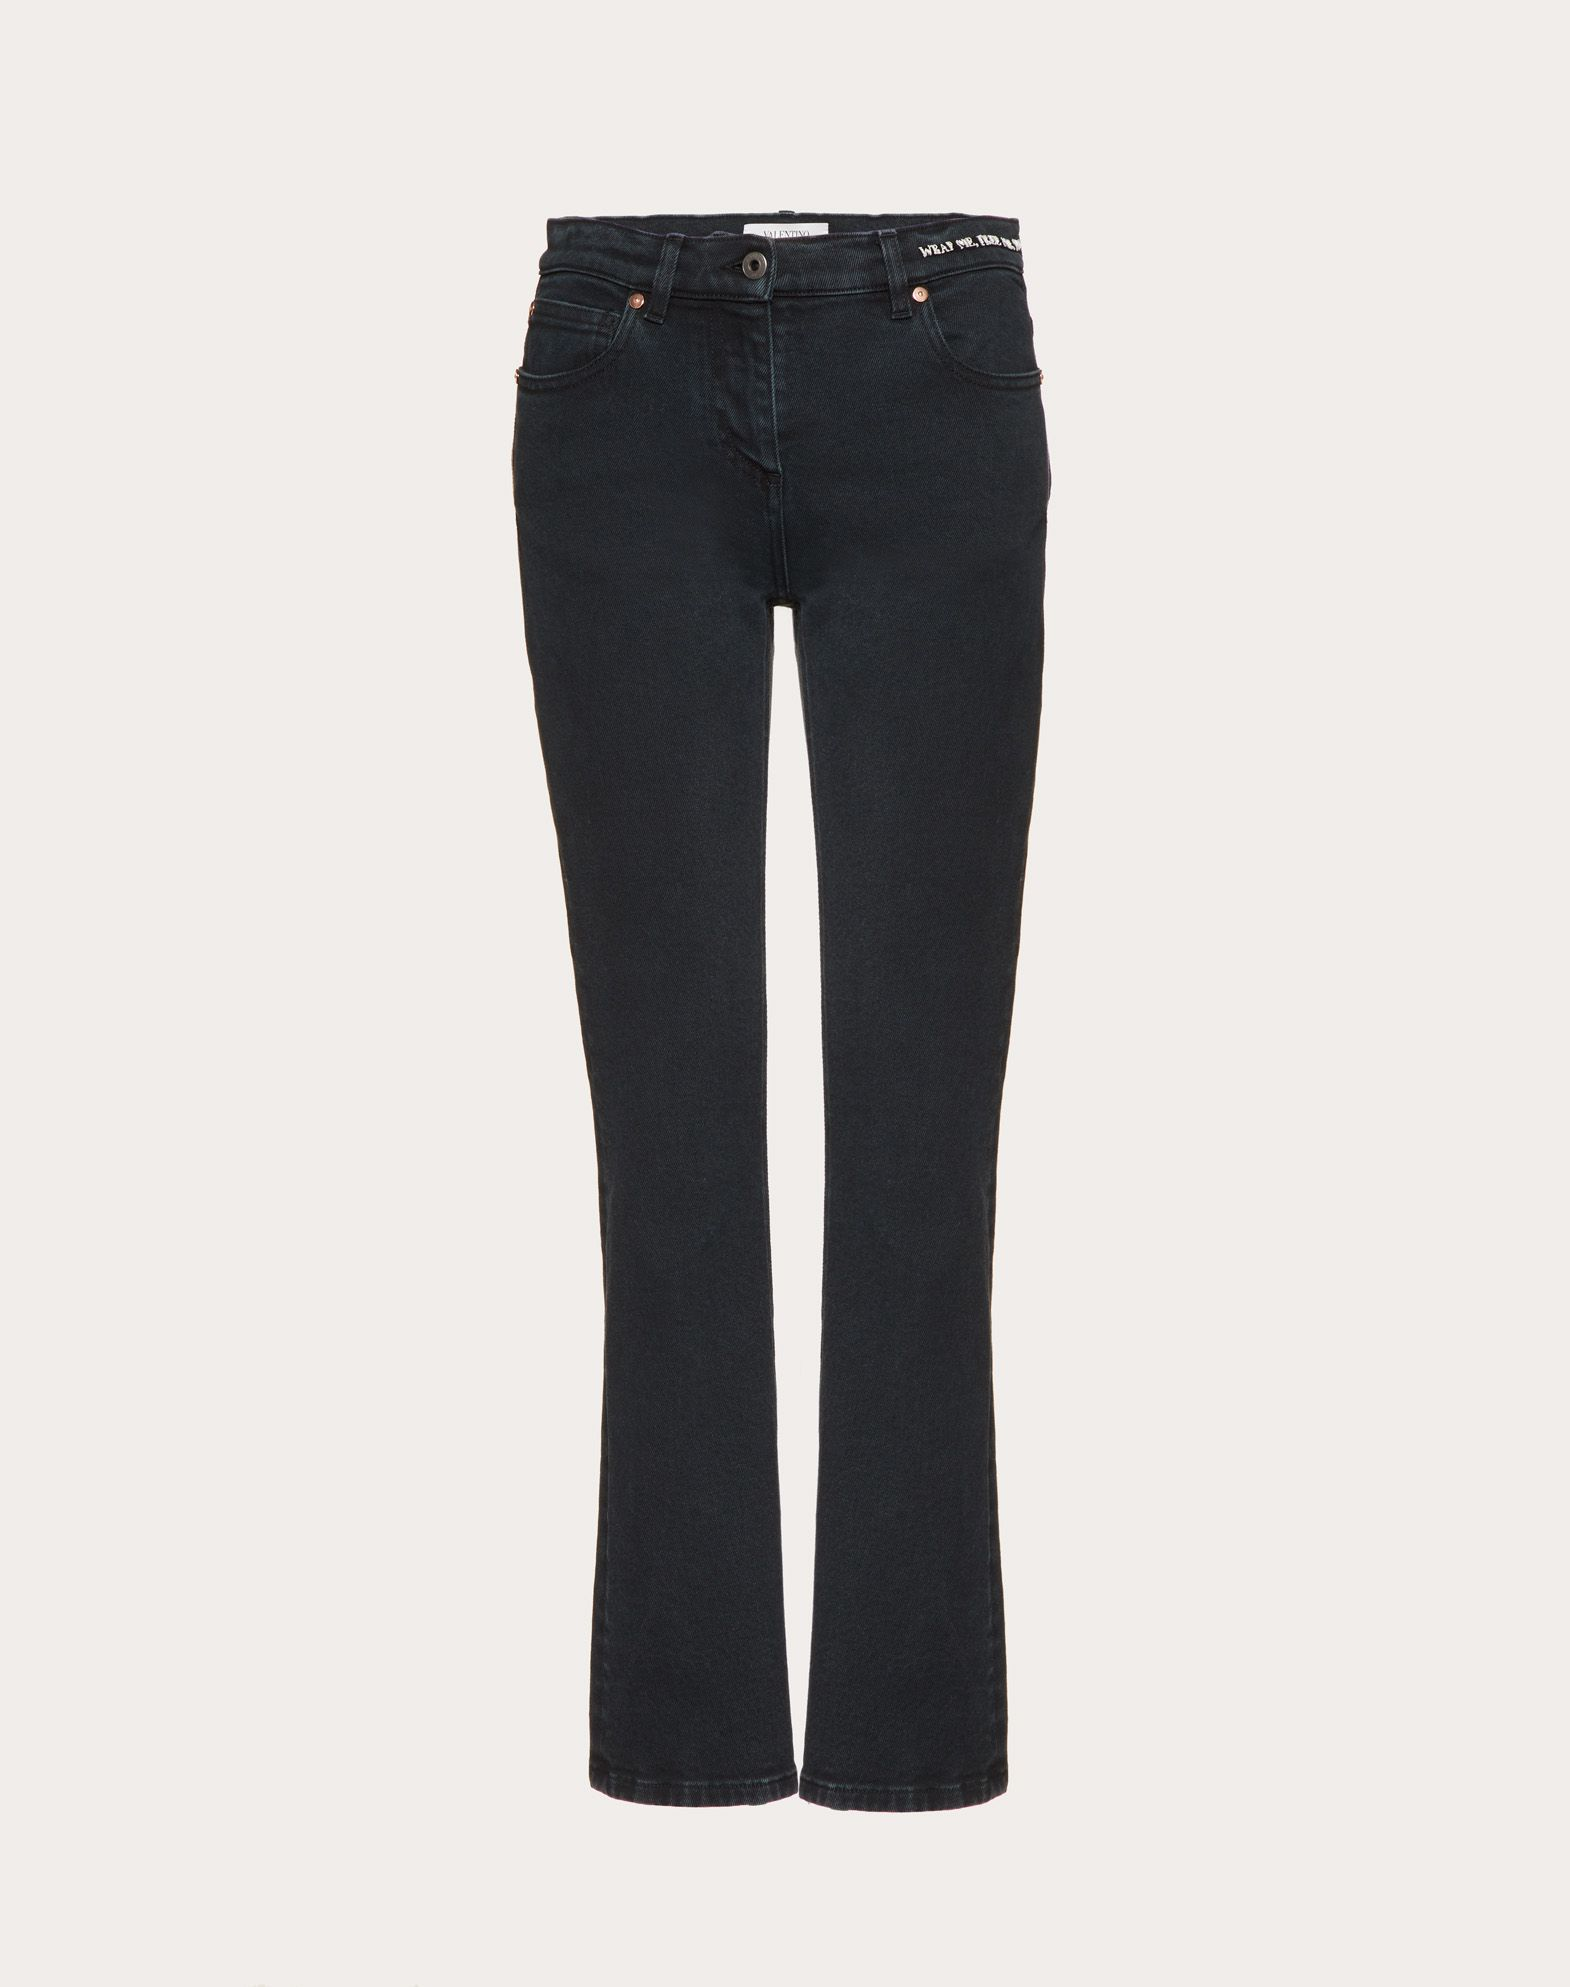 Poetry Embroidery Jeans